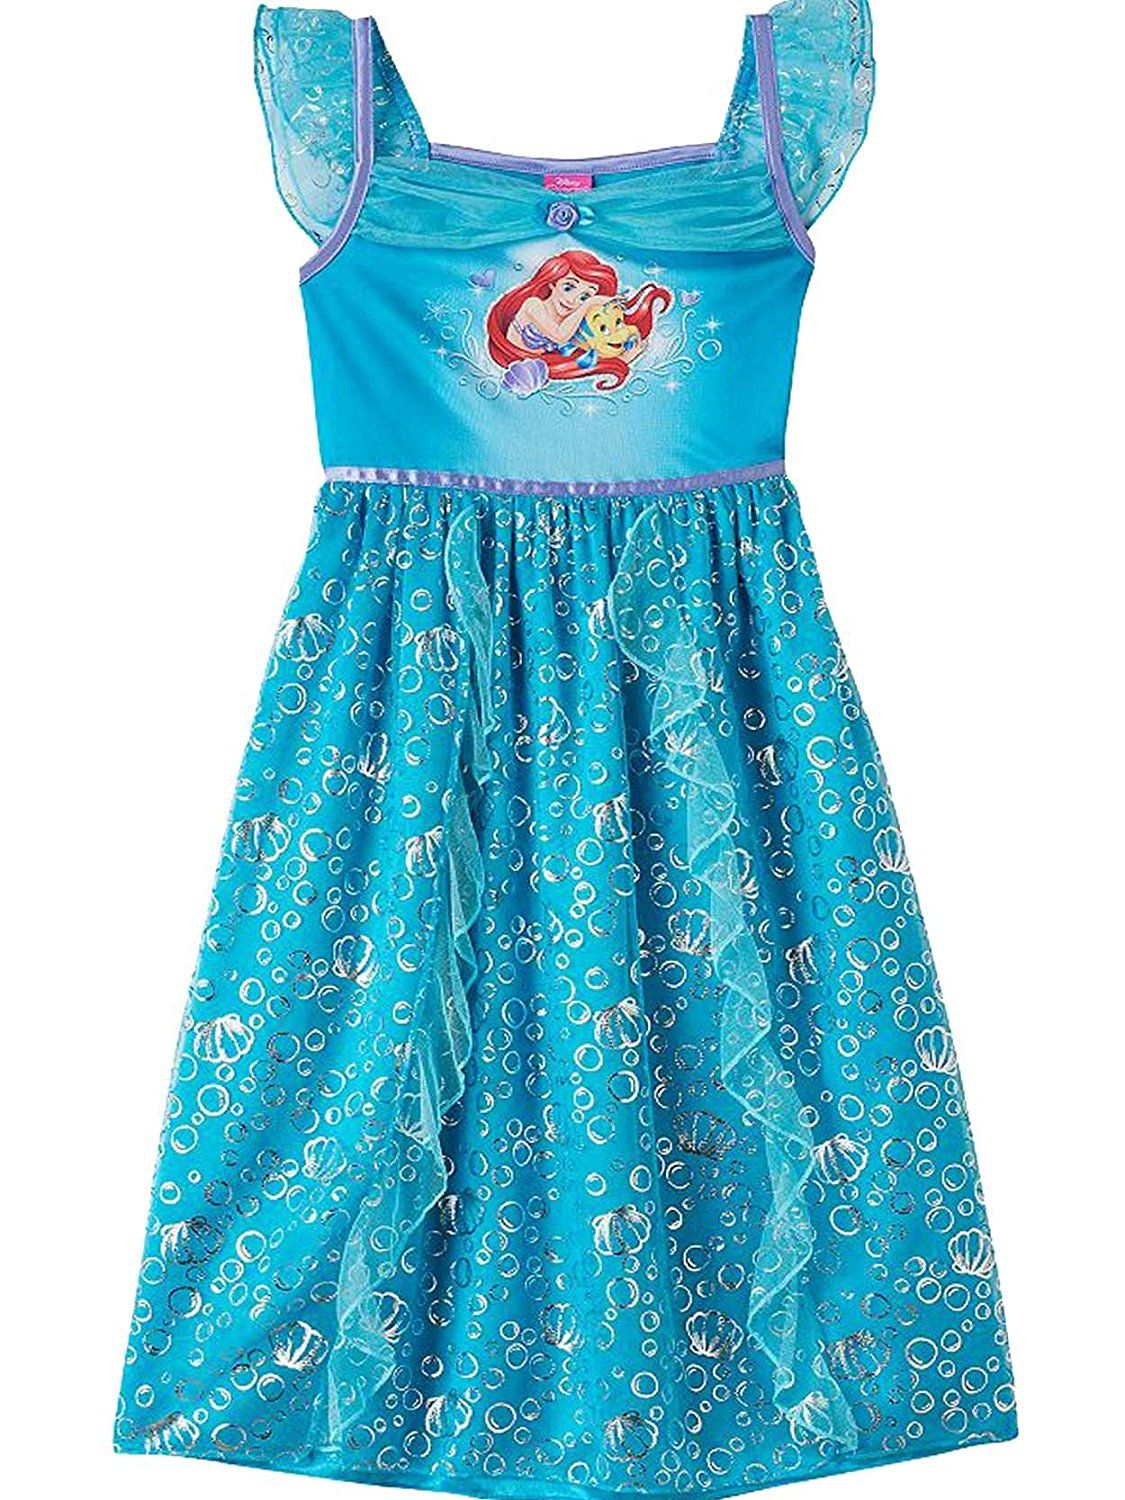 404caab13e The Little Mermaid Ariel Girls Fantasy Gown Nightgown Pajamas Toddler Little  Kid Big Kid Pull On closure Sublimated graphics on soft poly fabric Taped  neck  ...